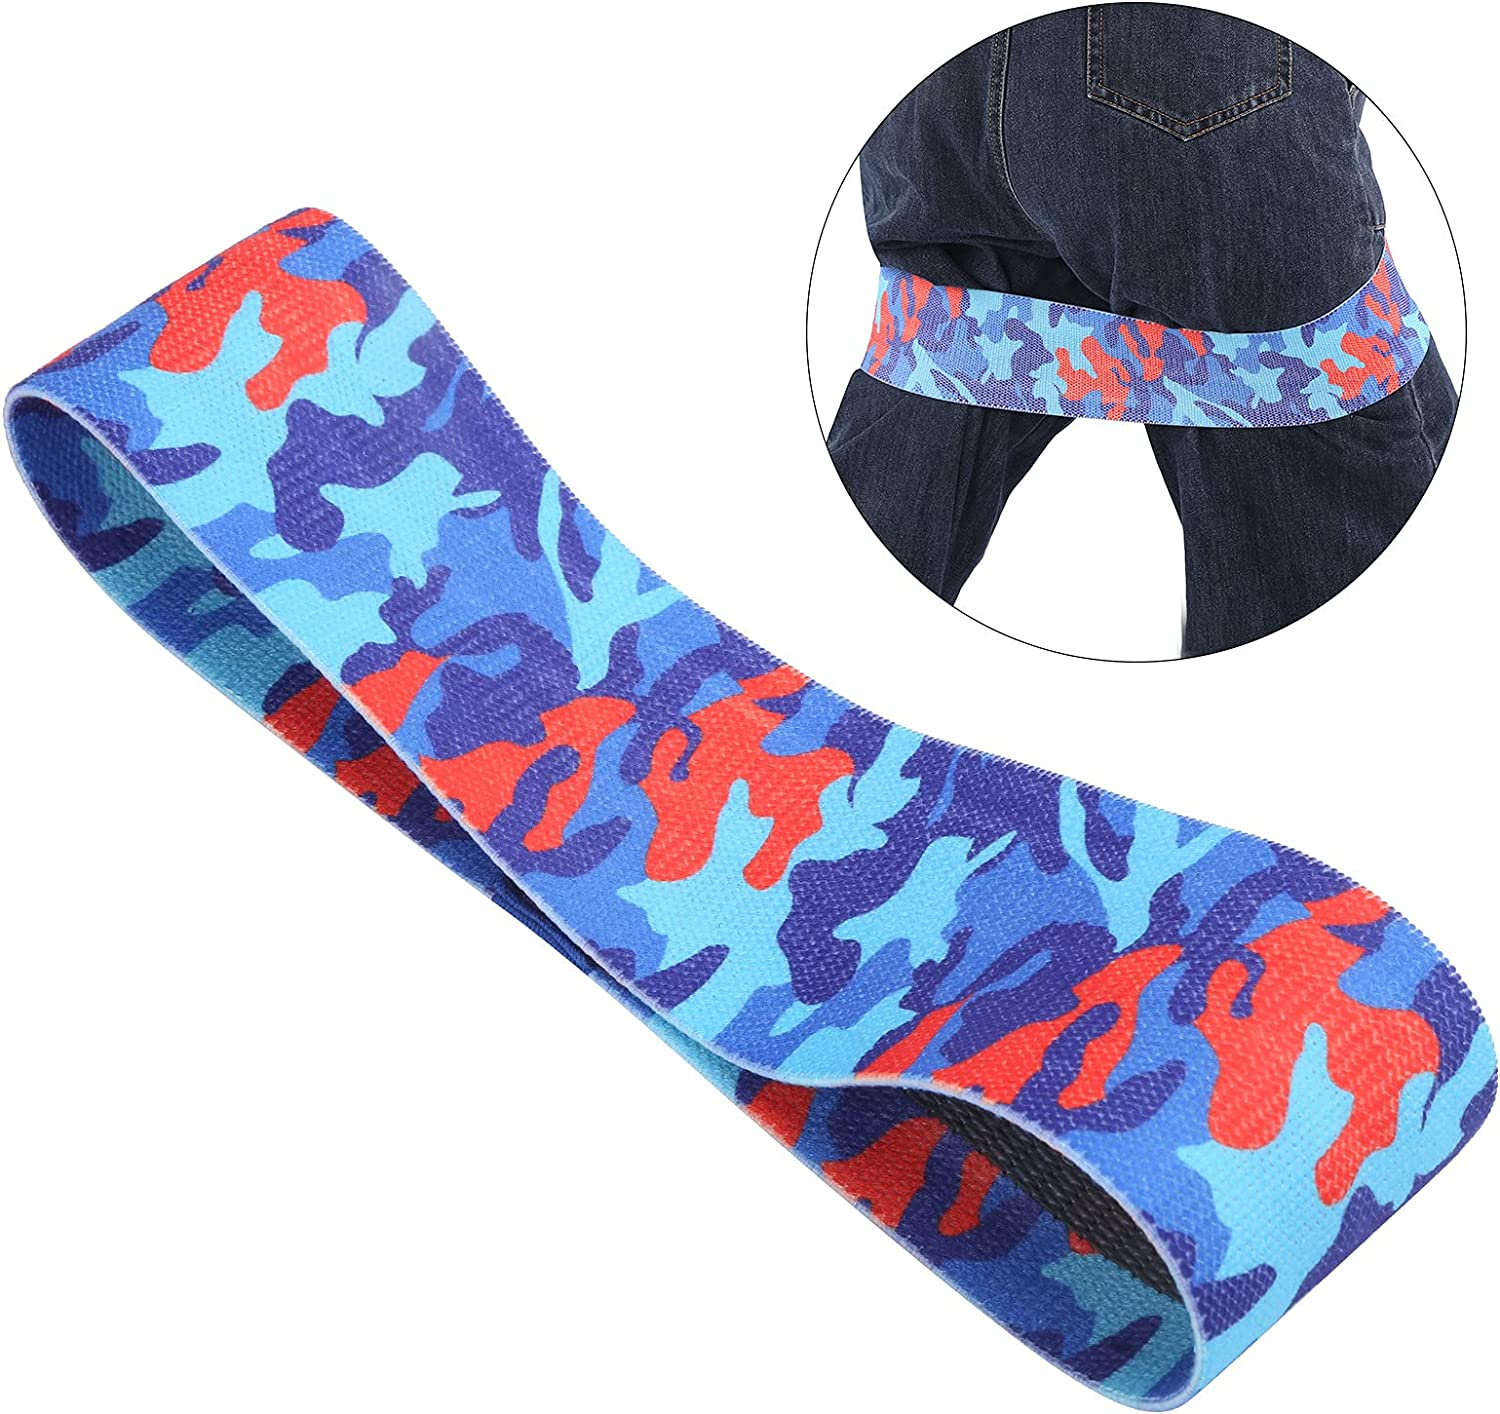 Resistance Bands 2021 spring and summer new Elastic Yoga Resi shipfree Booty